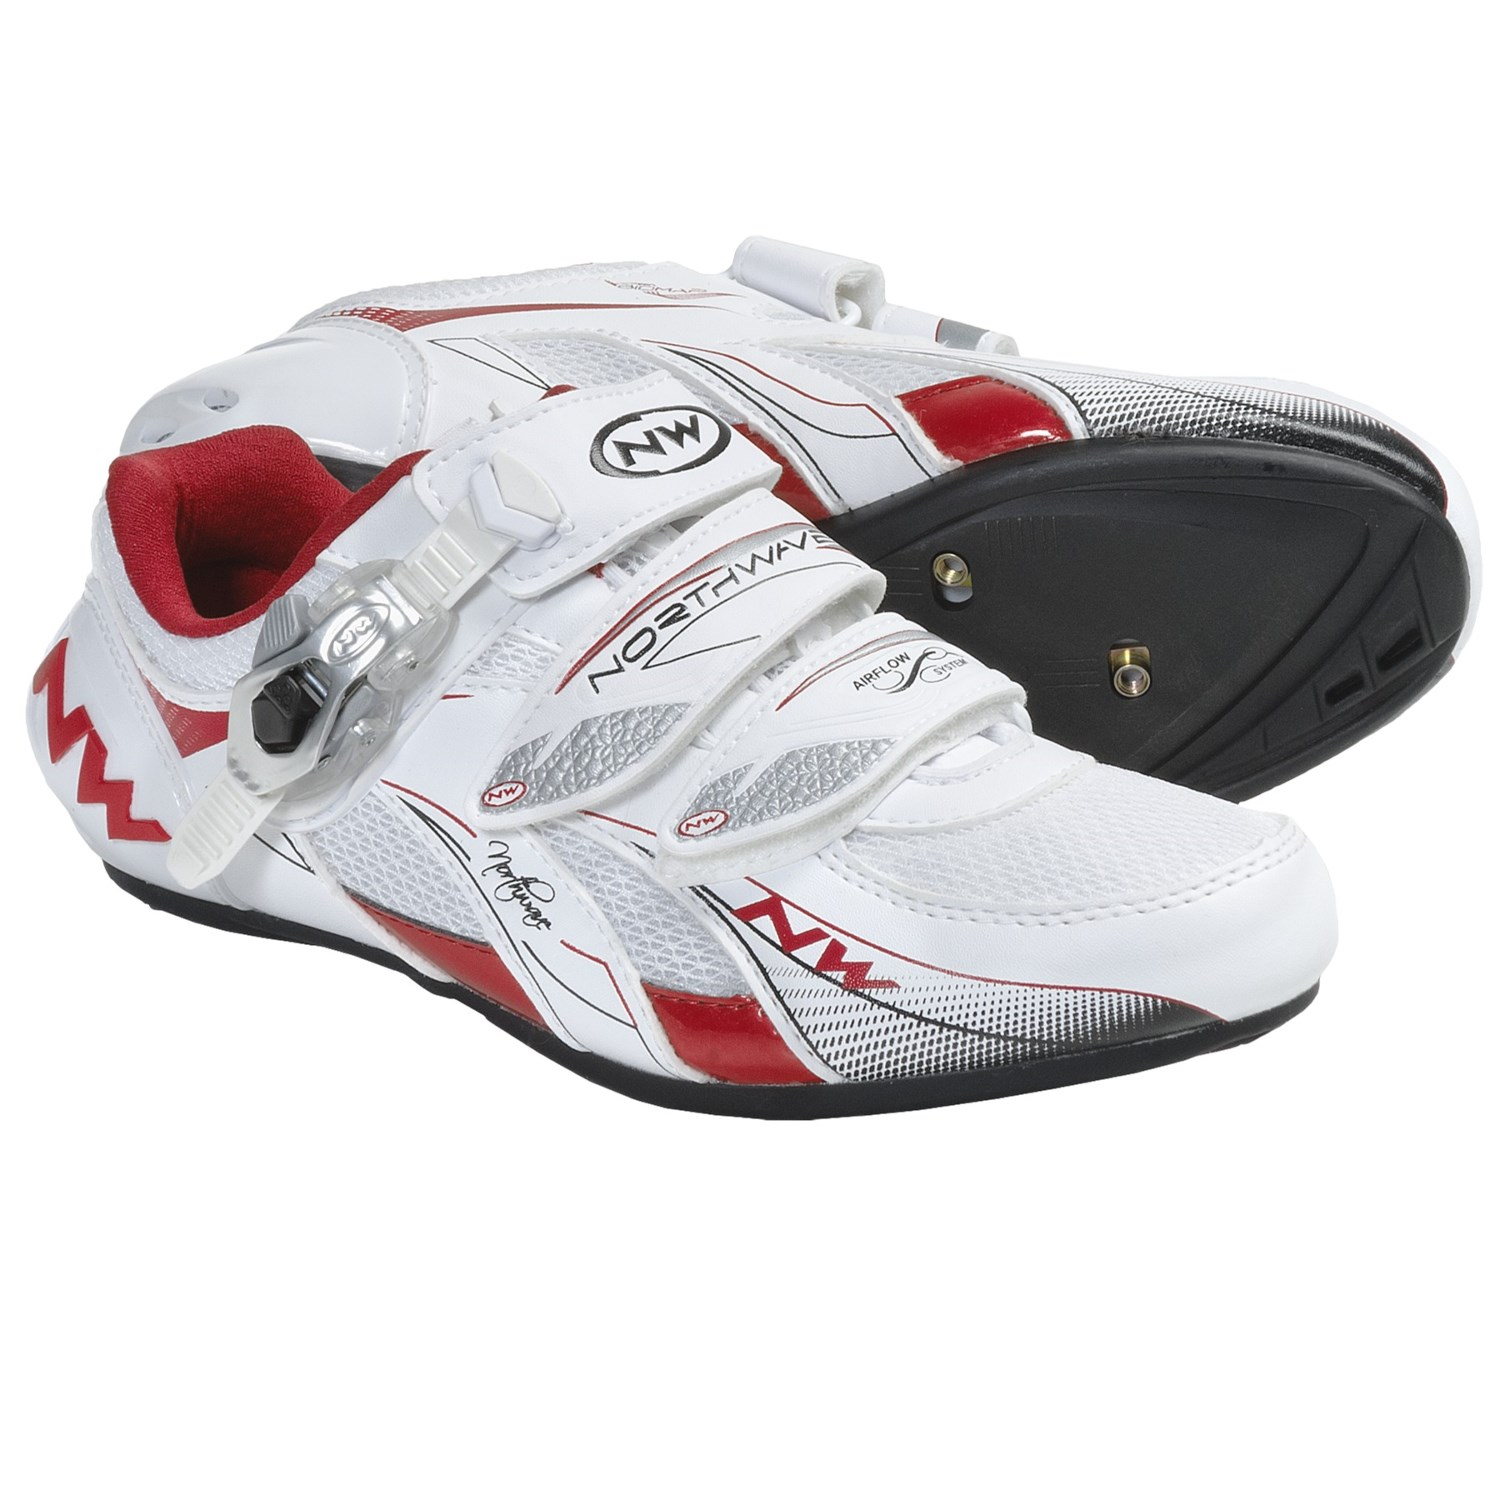 northwave venus s b s road cycling shoes 3 for